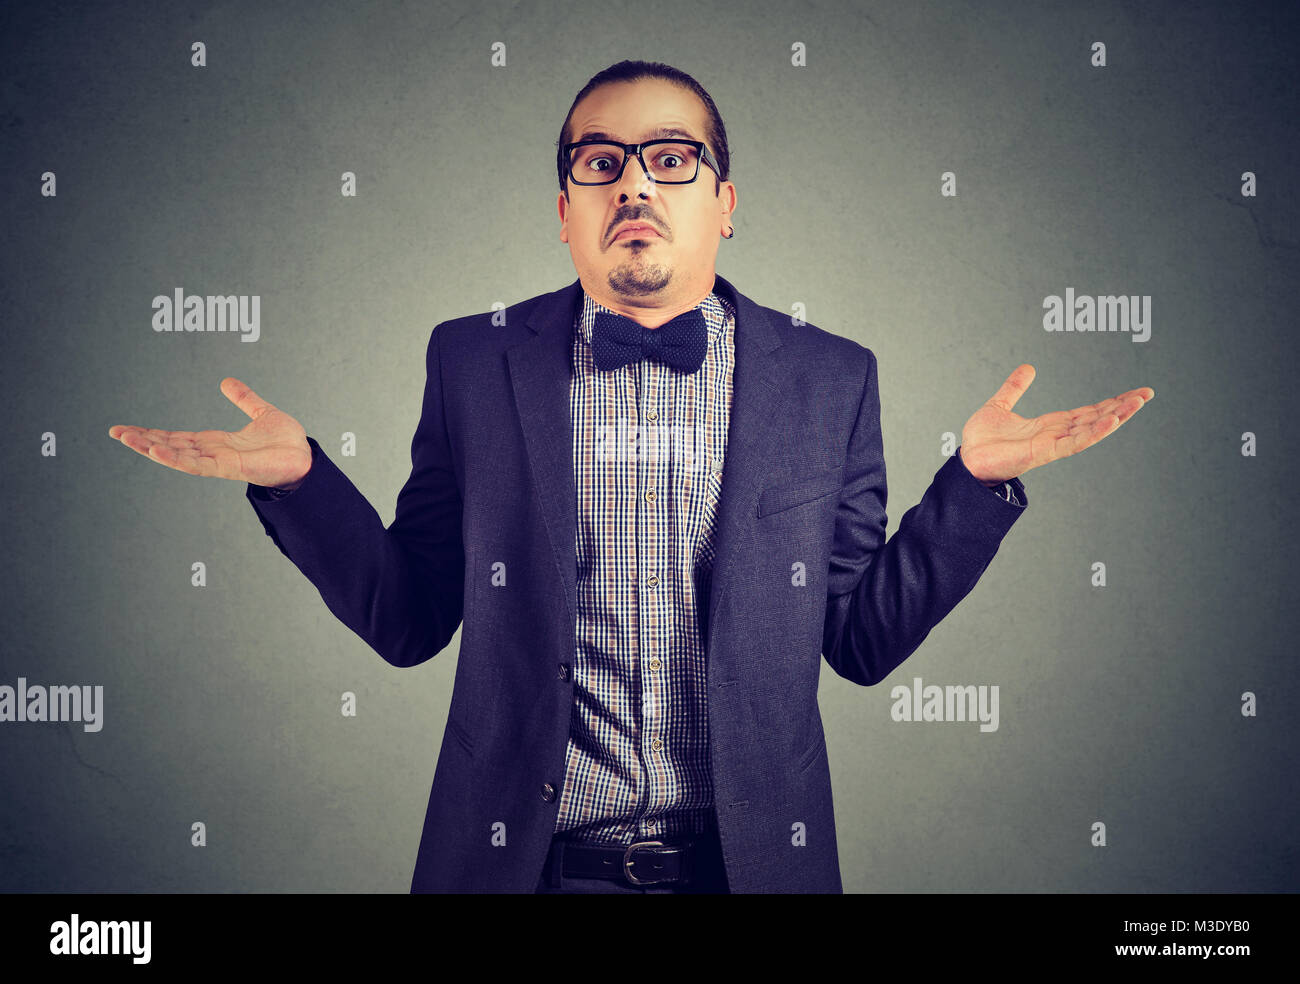 Young man in formal clothing shrugging shoulders while posing on gray and looking confused. - Stock Image